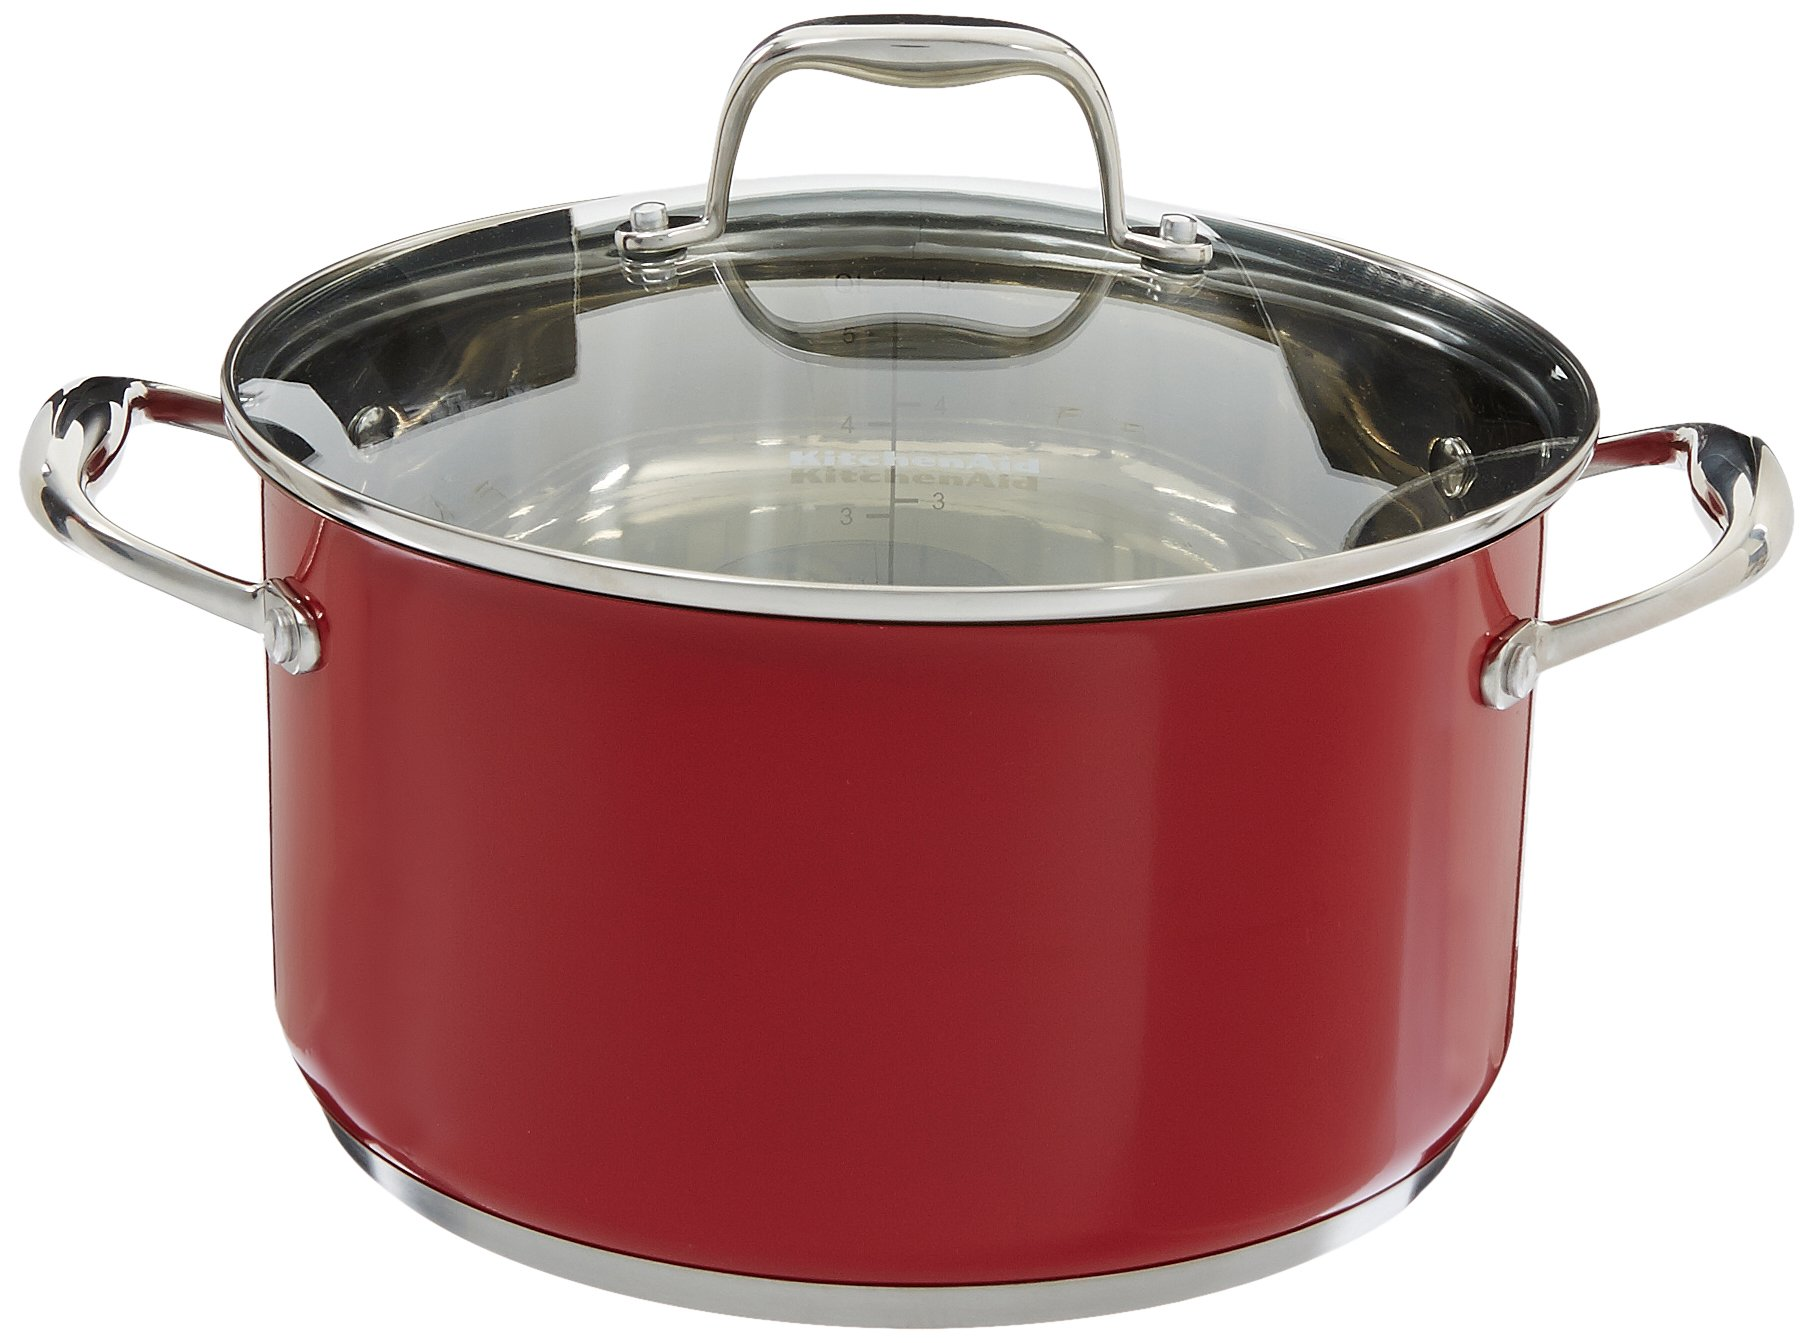 KitchenAid KCS60LCER Stainless Steel 6.0-Quart Low Casserole with Lid Cookware - Empire Red